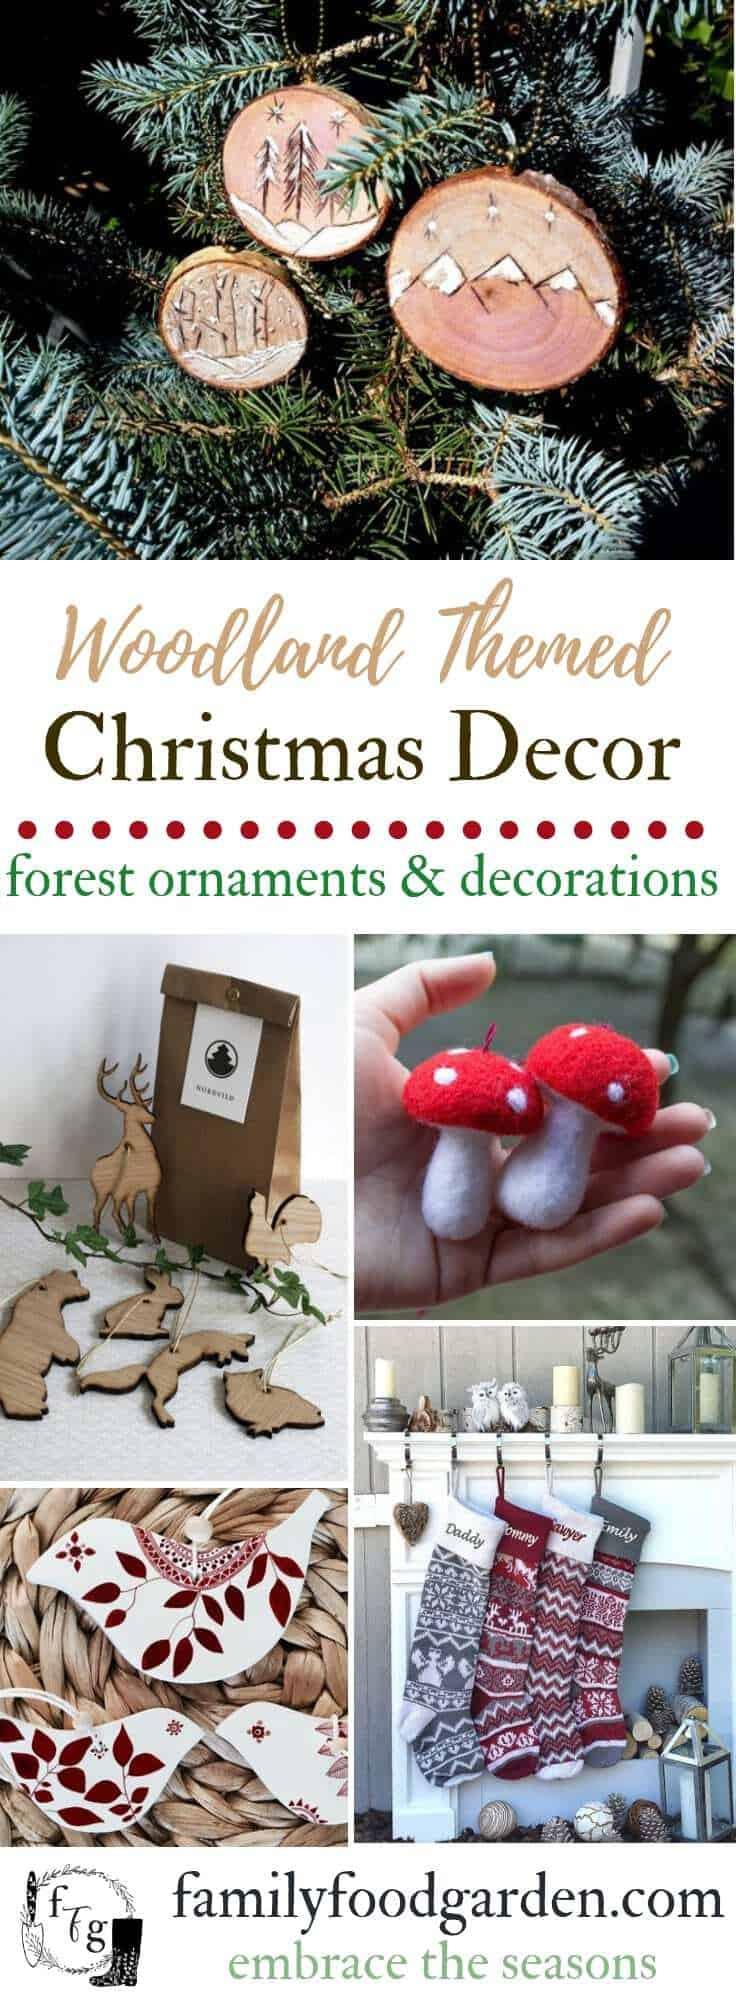 Woodland Christmas Decorations.Woodland Christmas Decorations Ornaments Family Food Garden